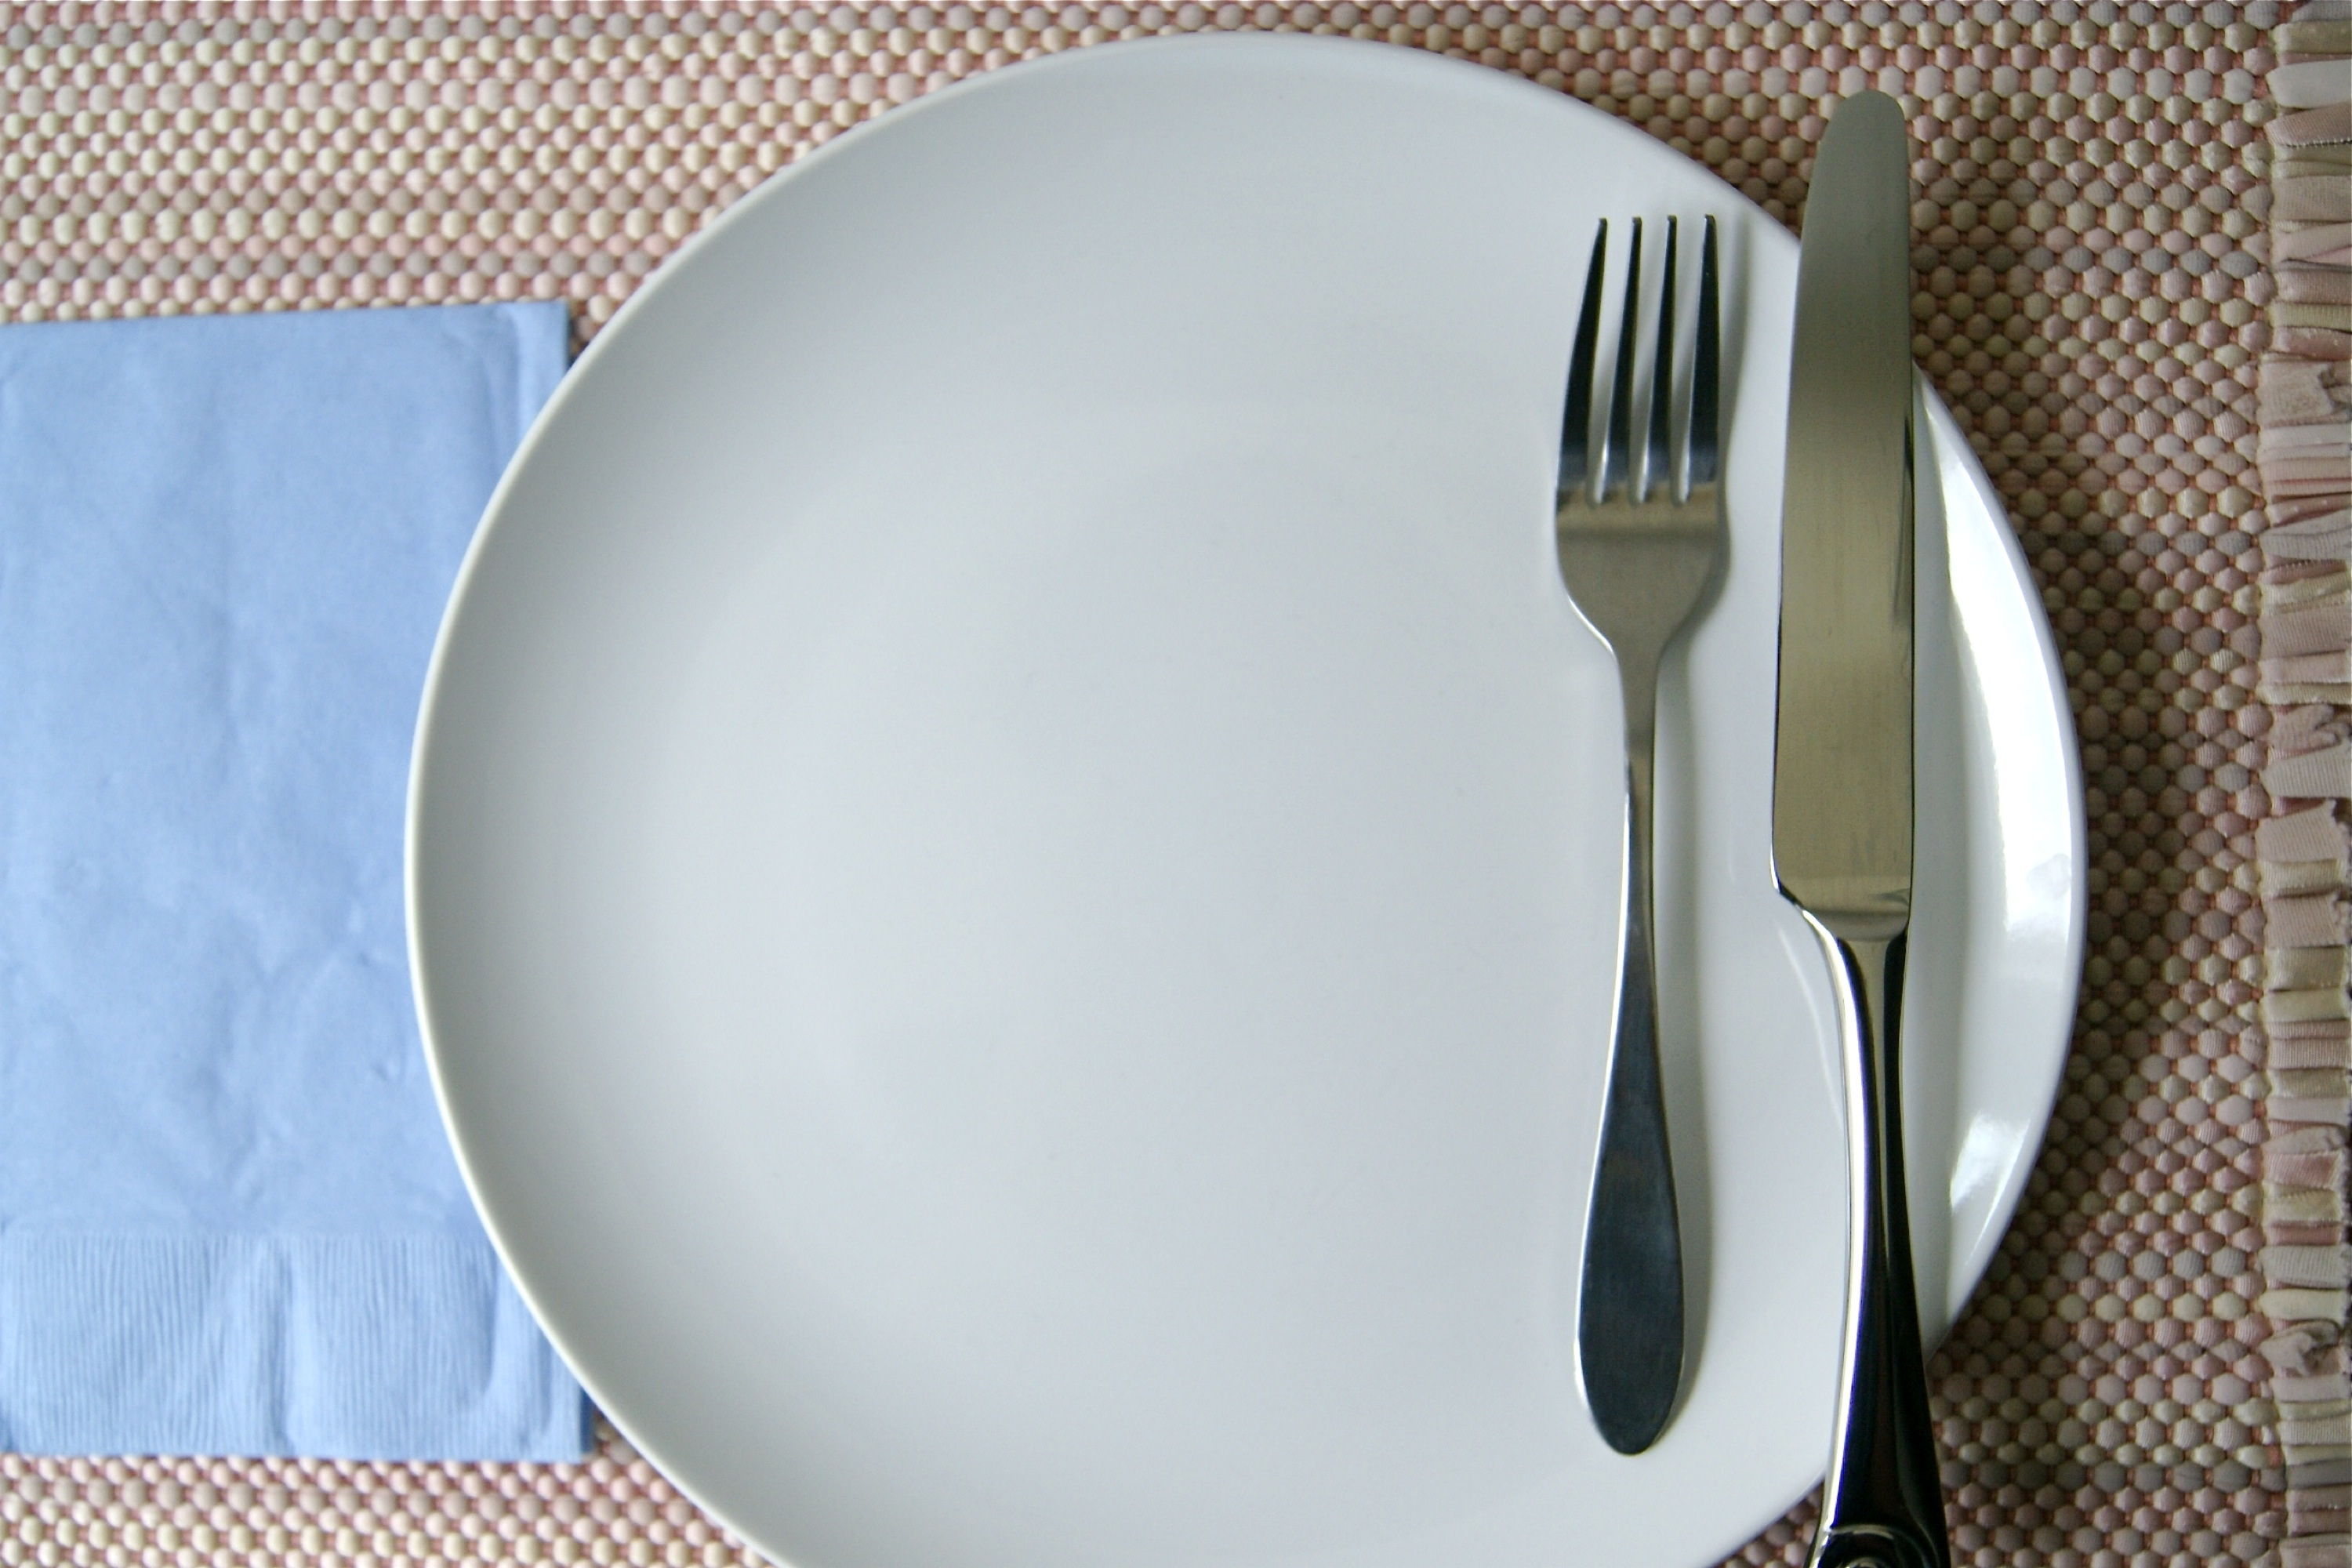 How to place utensils when finished eating our everyday life for Table utensils